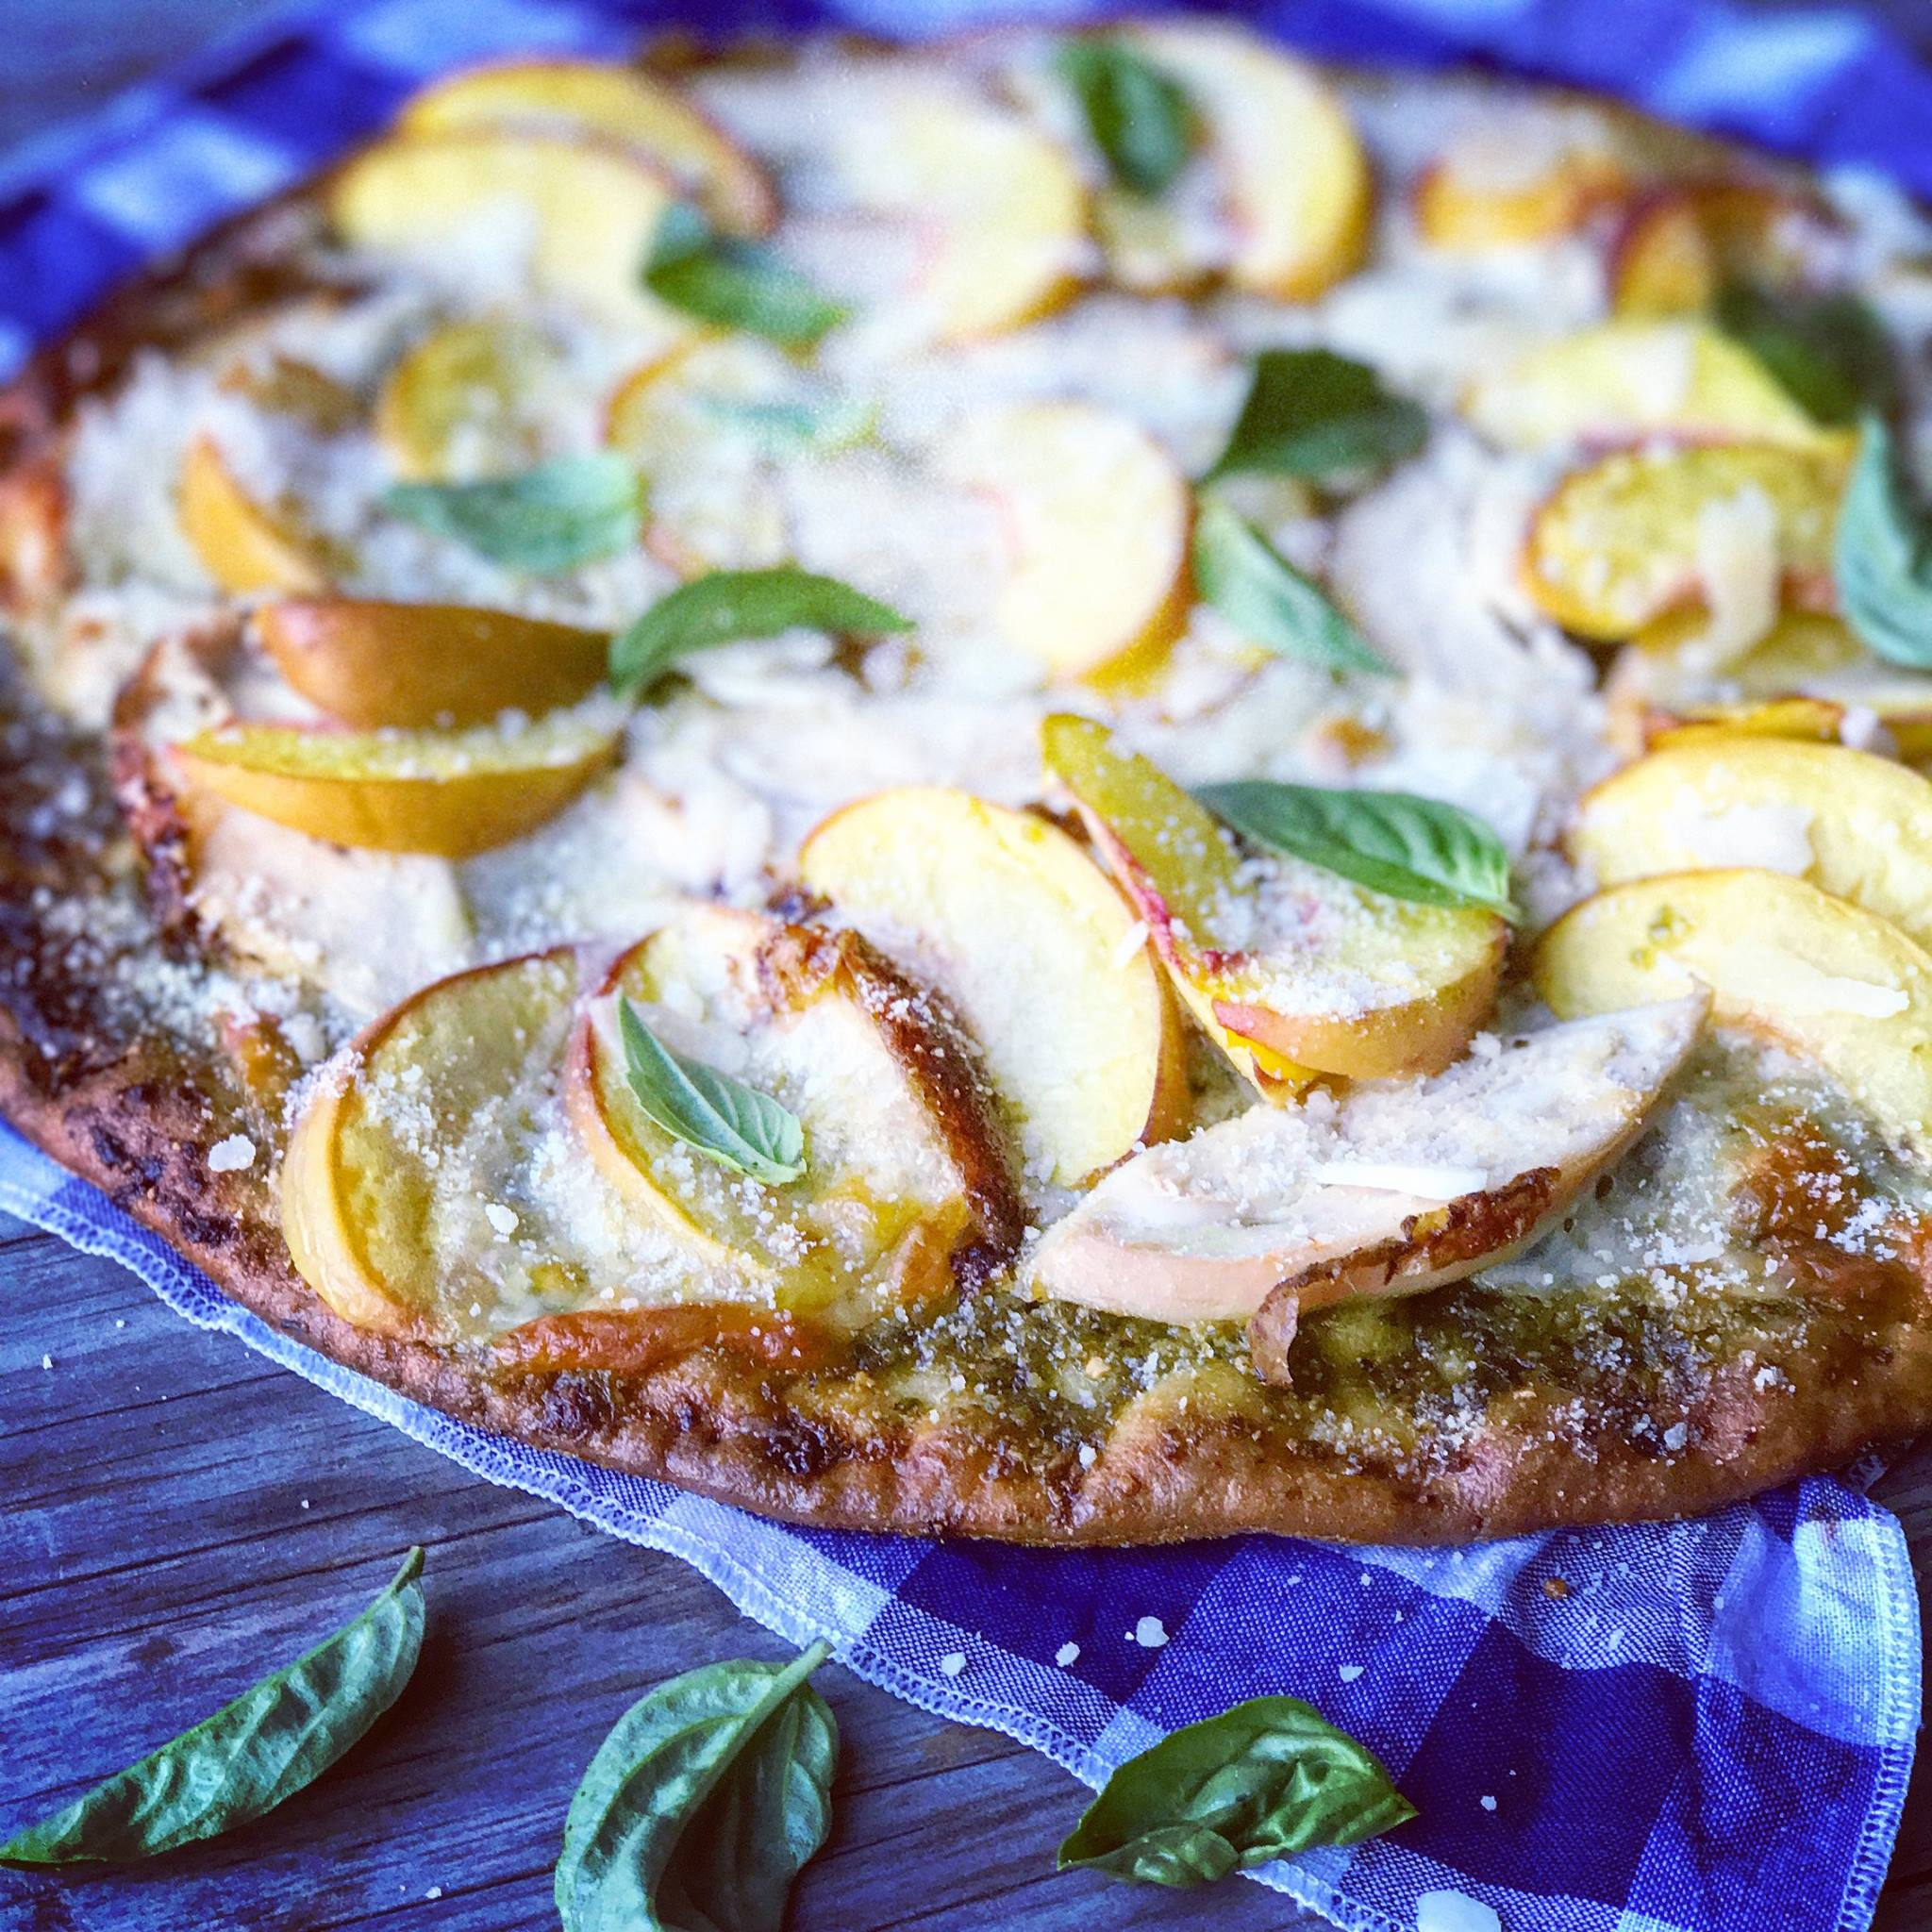 Peaches and provolone pizza with mango orange marinade